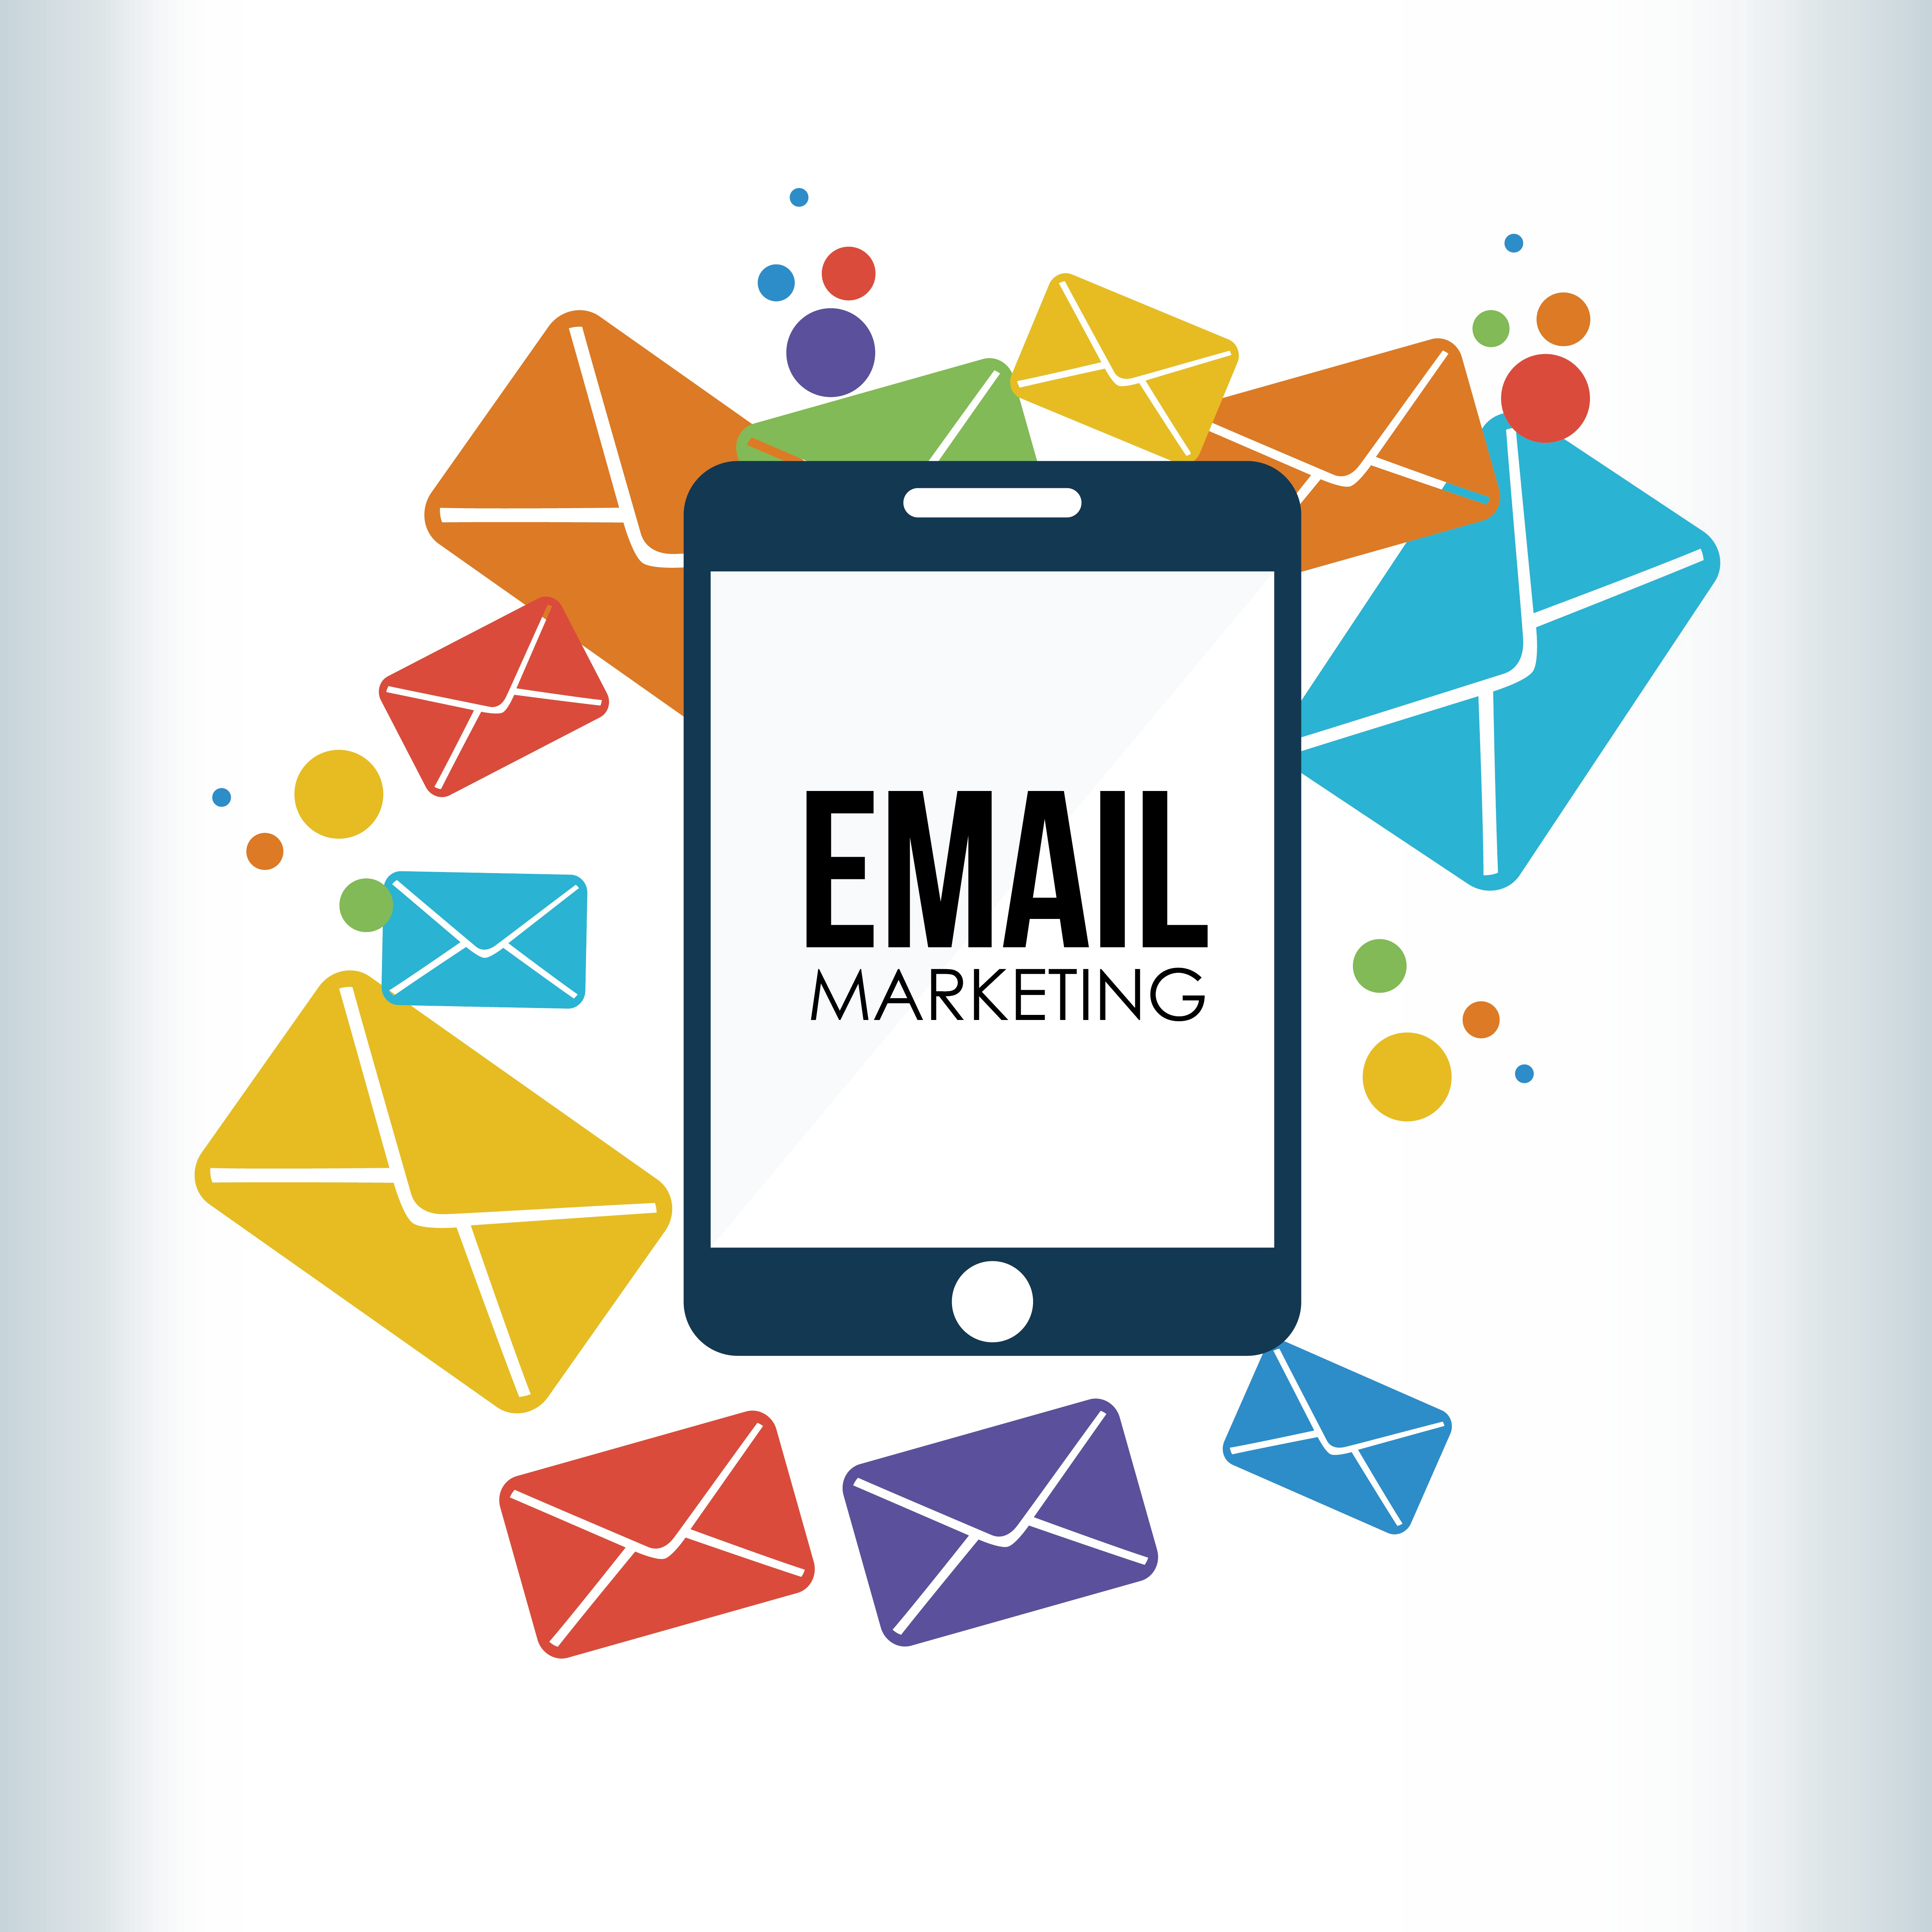 Email marketing png. High quality image vector